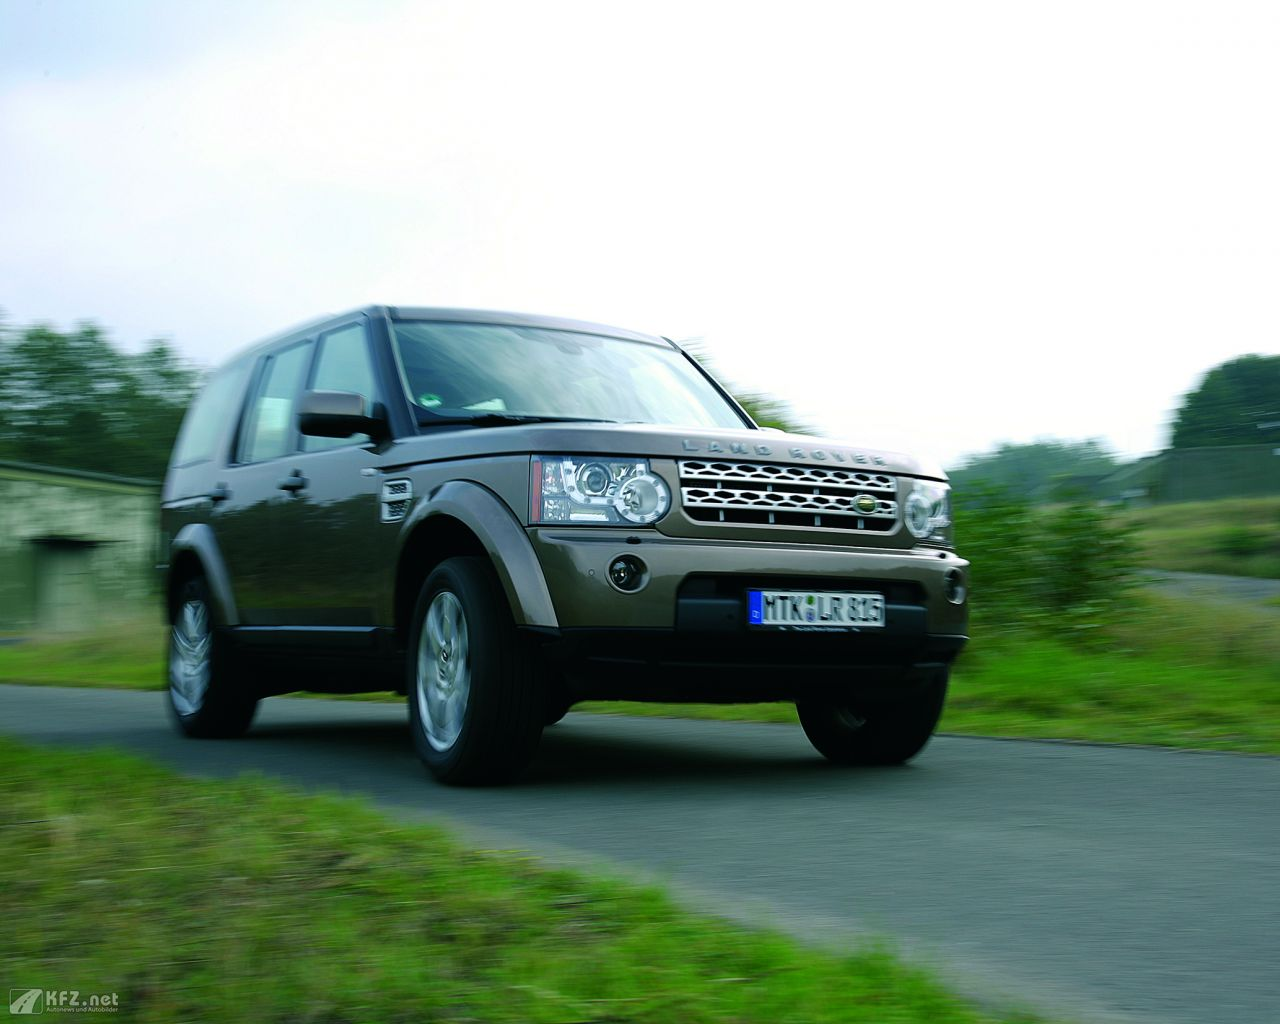 land-rover-discovery-1280x1024-12